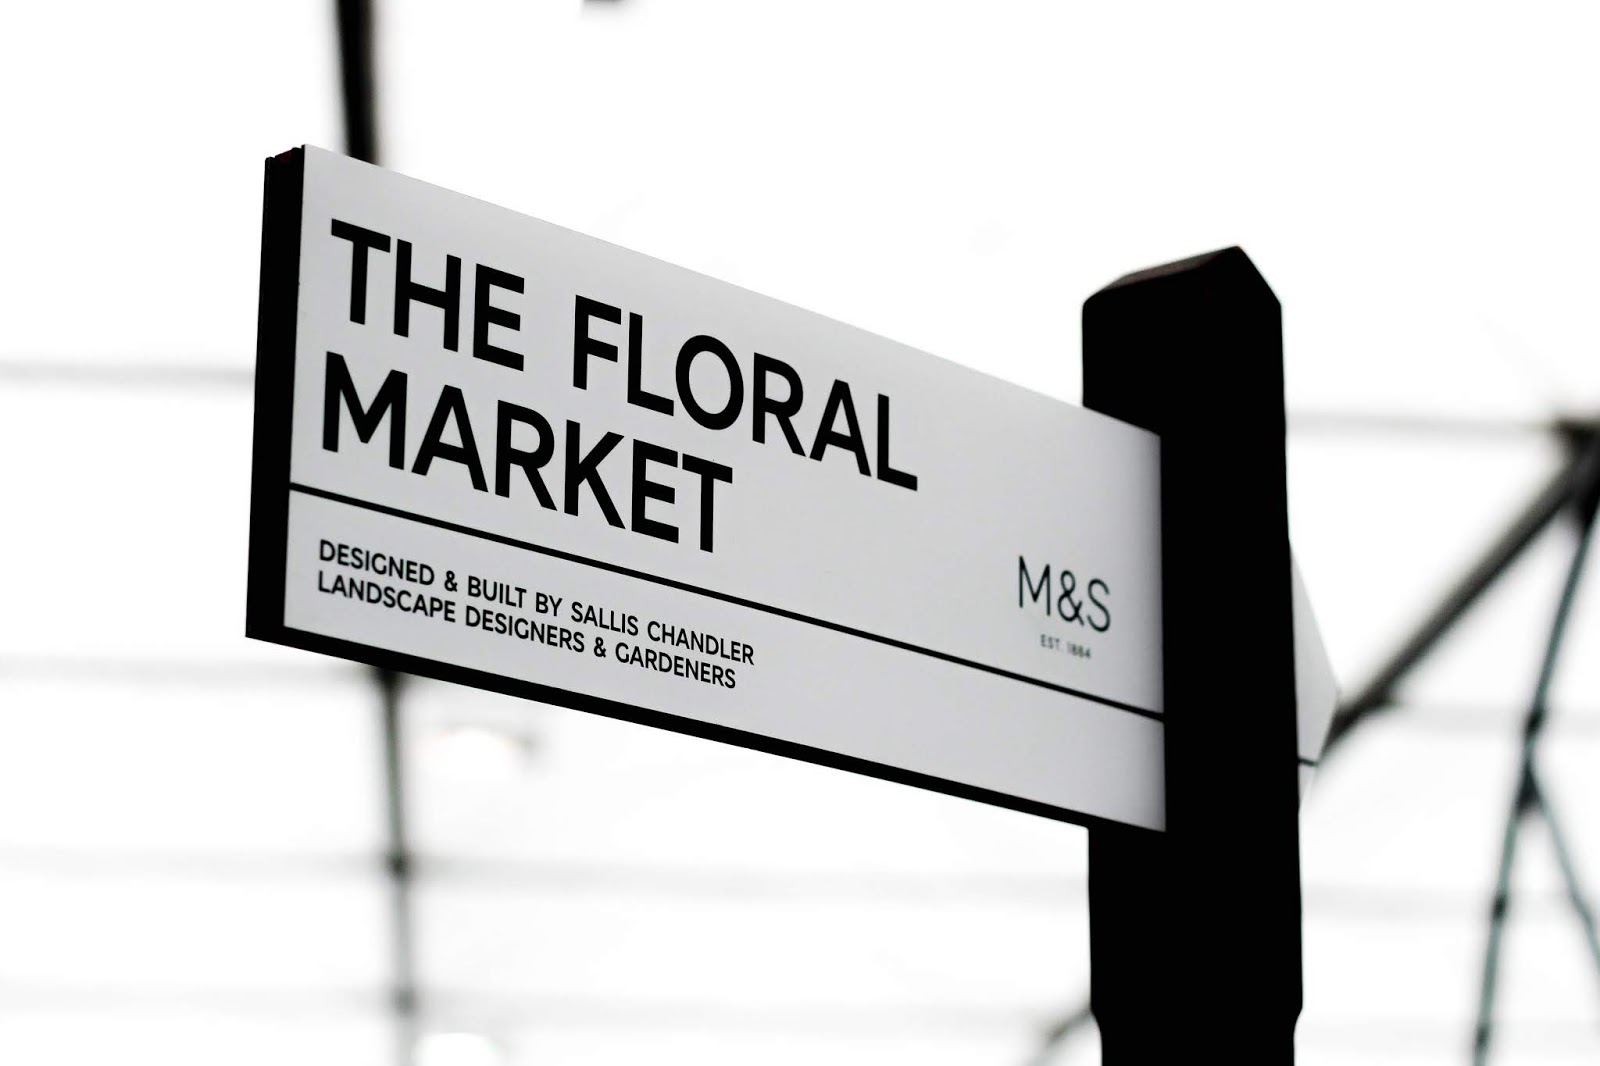 M&S The Floral Market Chelsea Flower Show 2018